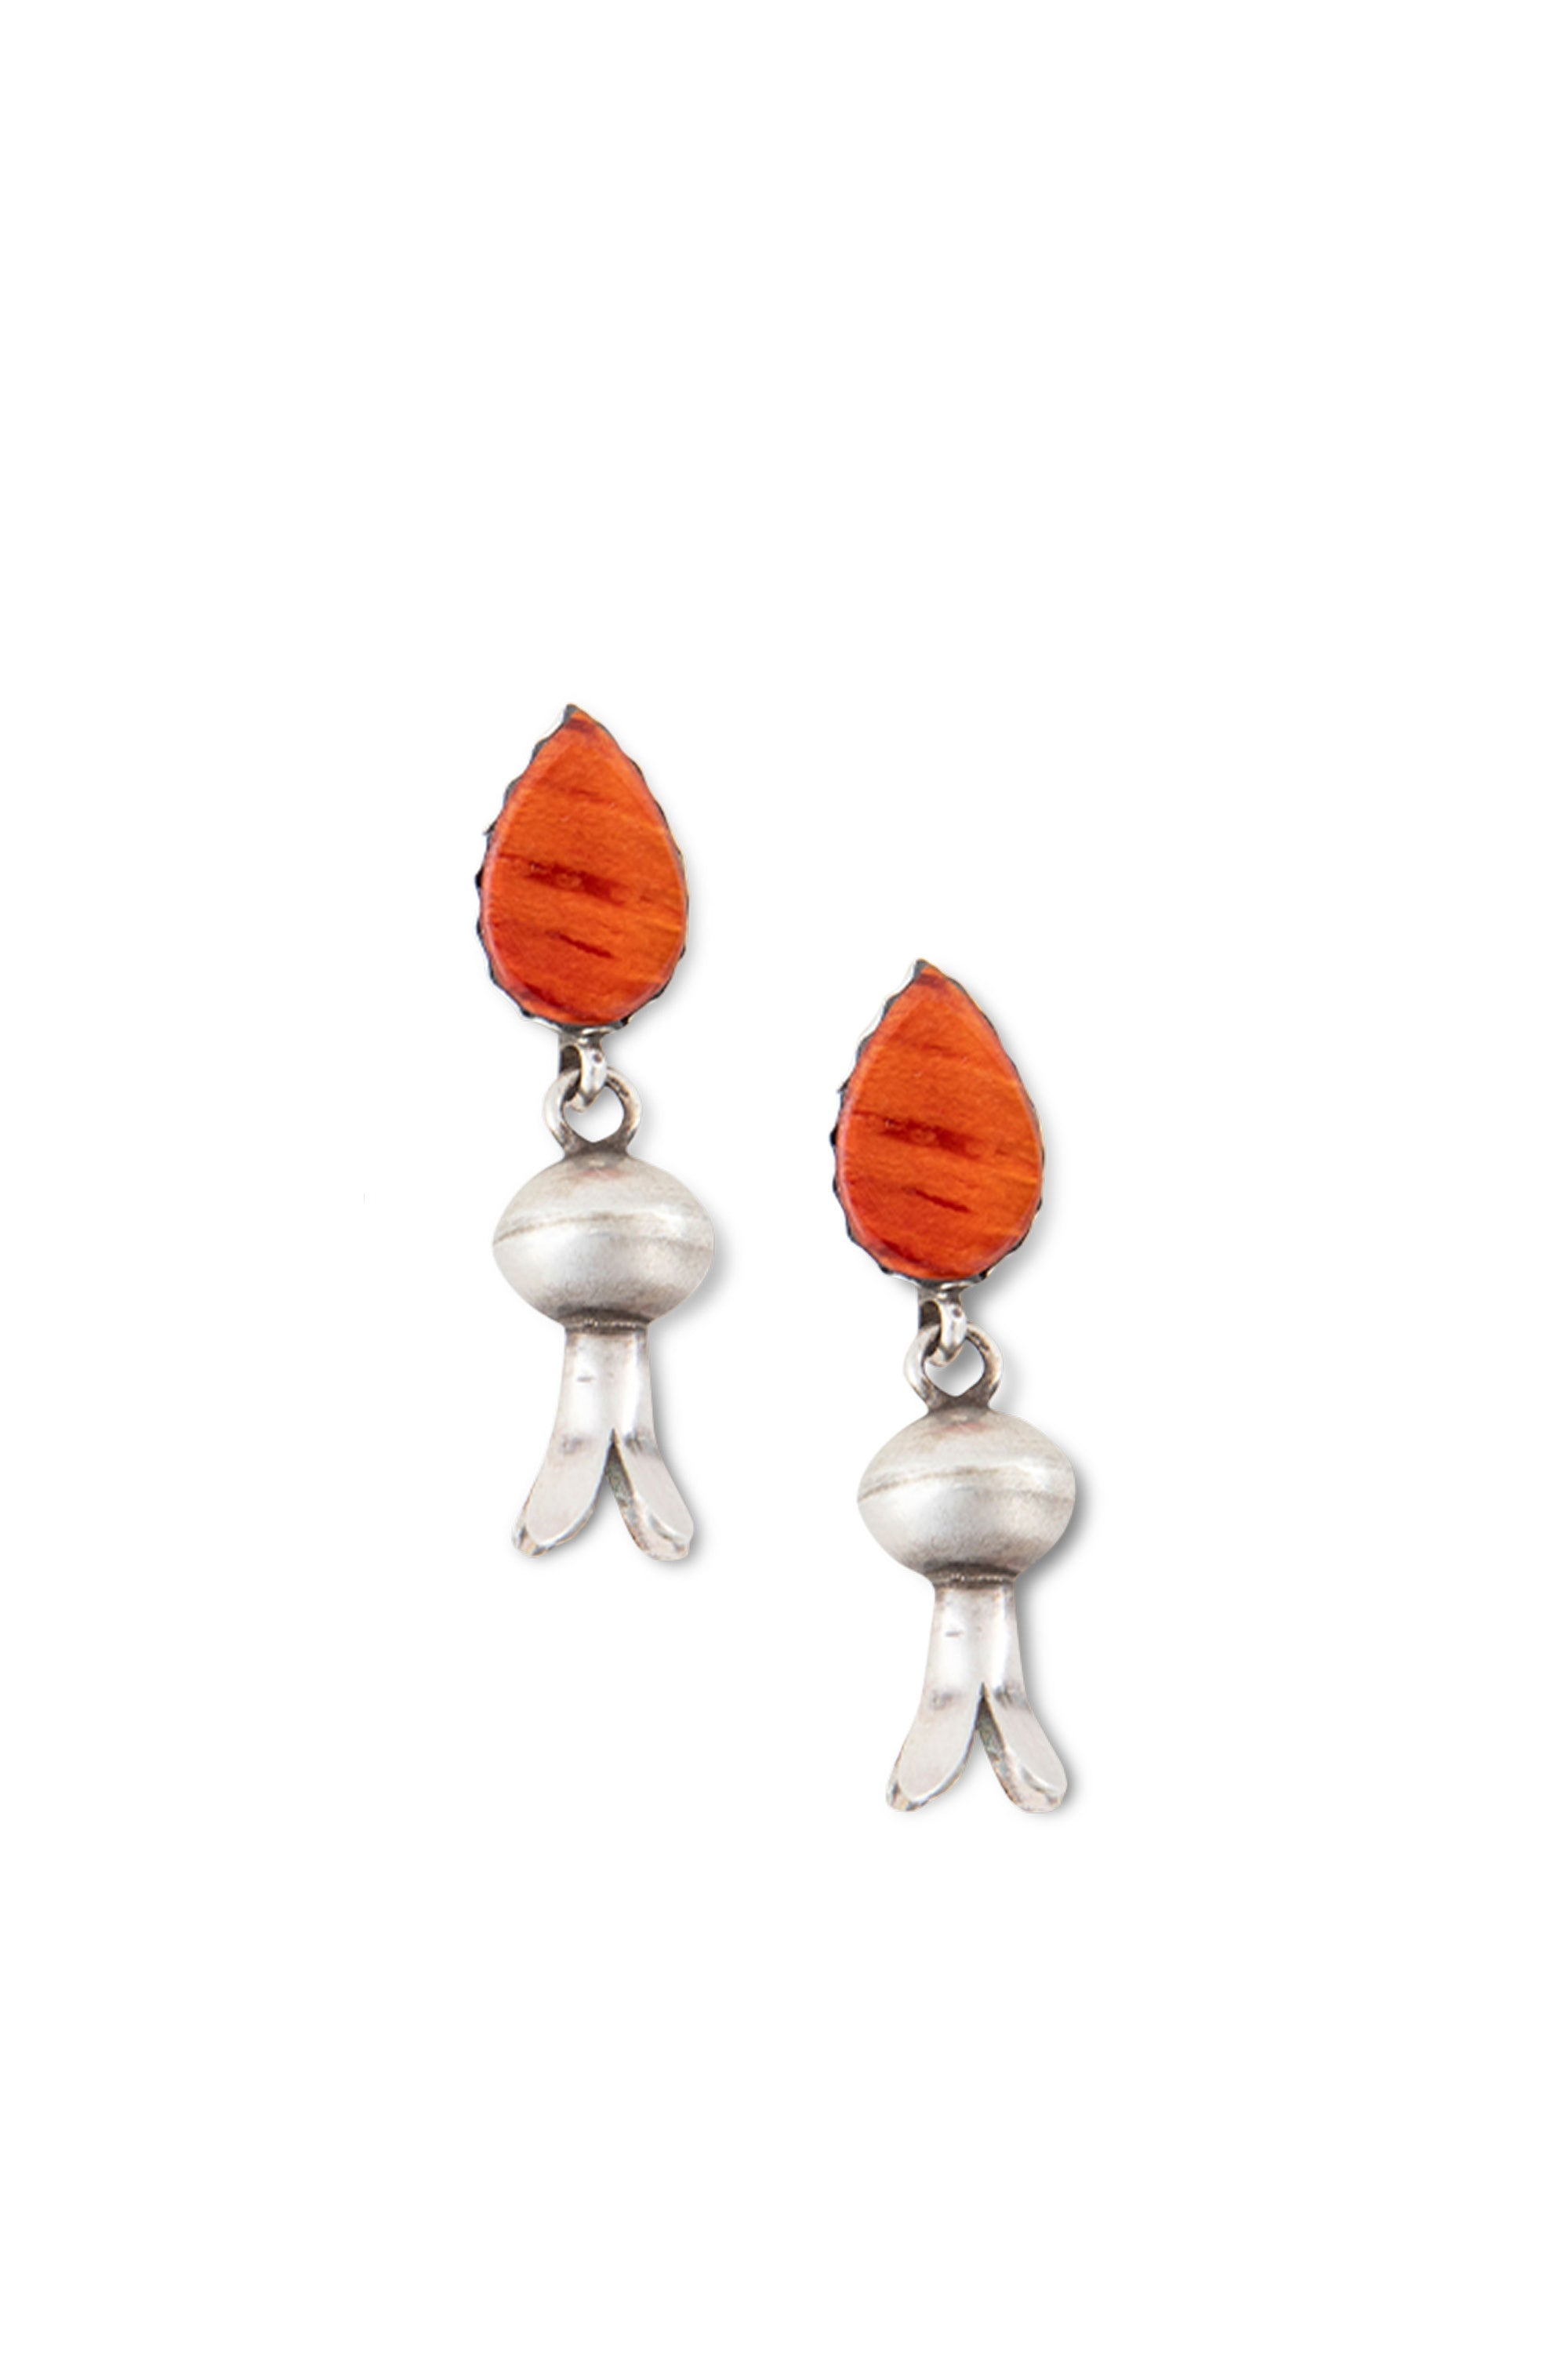 Earrings, Blossom, Spiny Coral, Hallmark, 421